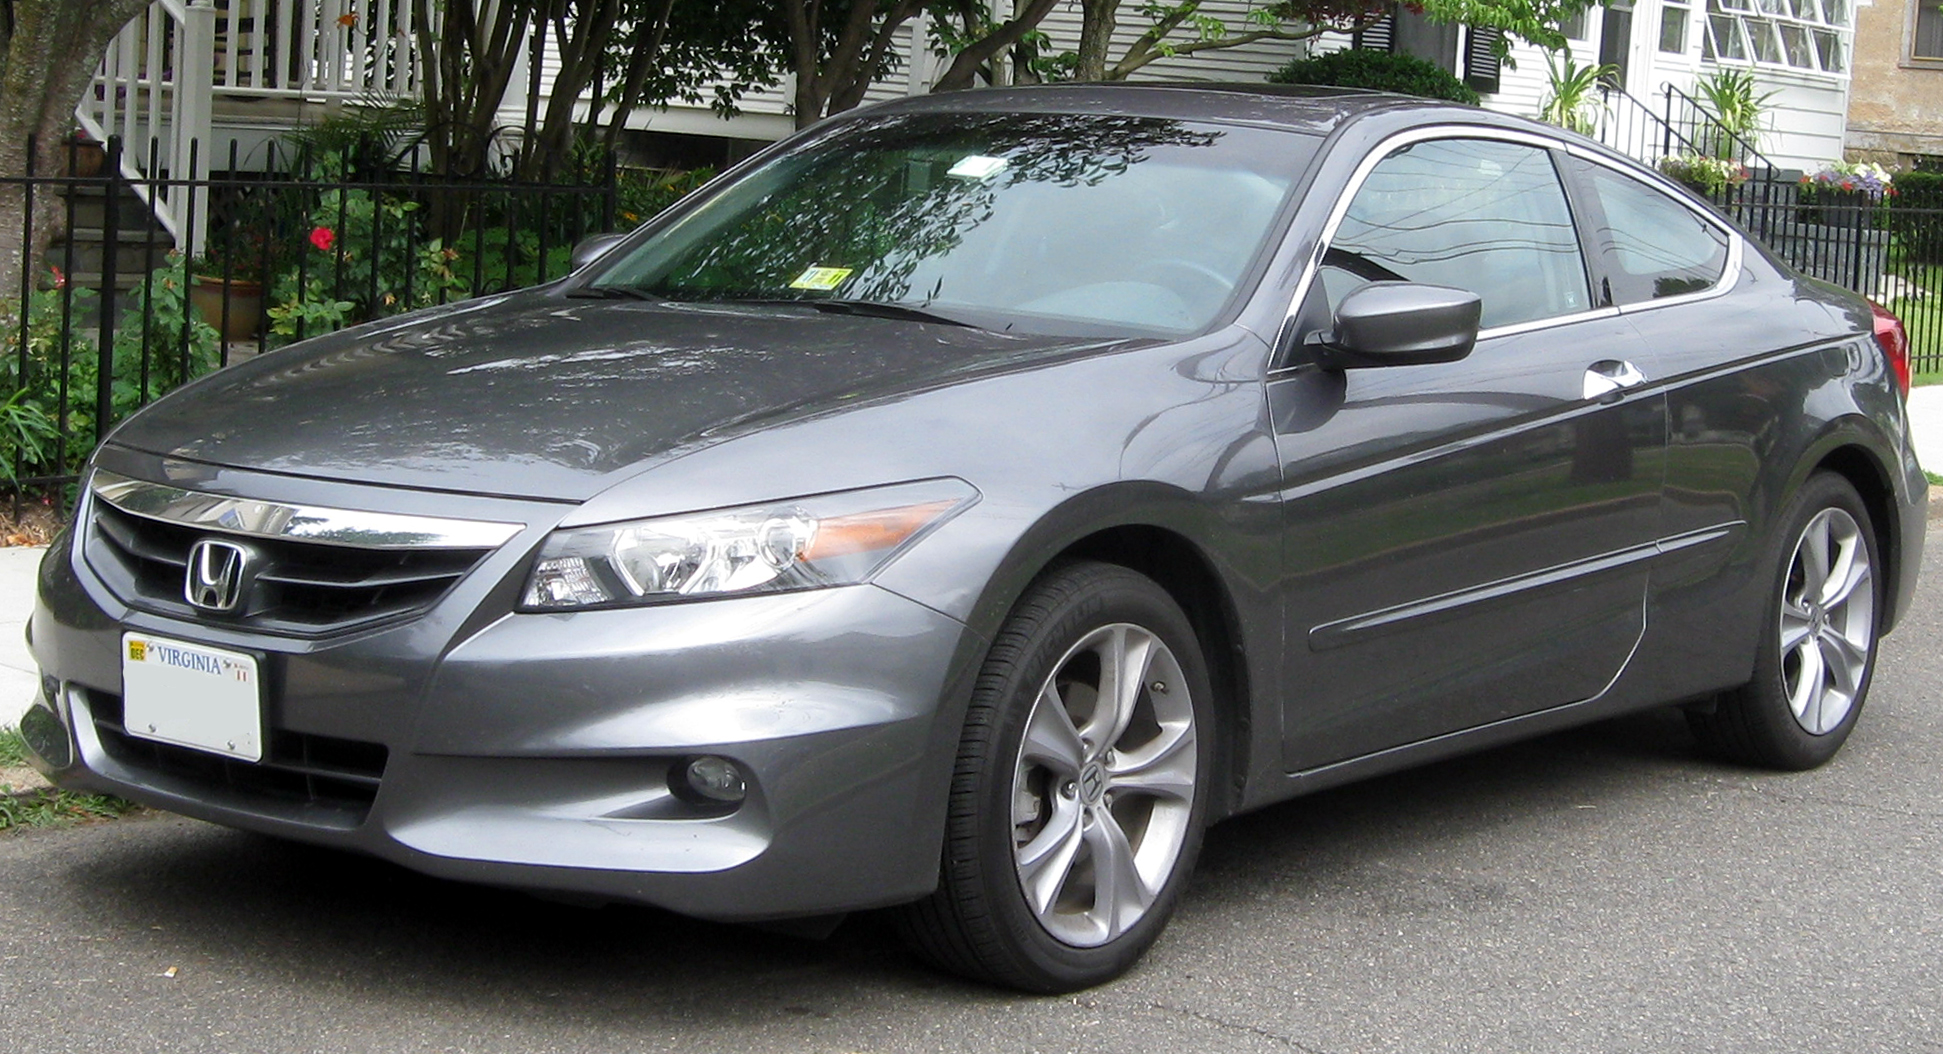 File 2011 Honda Accord Coupe 06 20 2011 Jpg Wikimedia